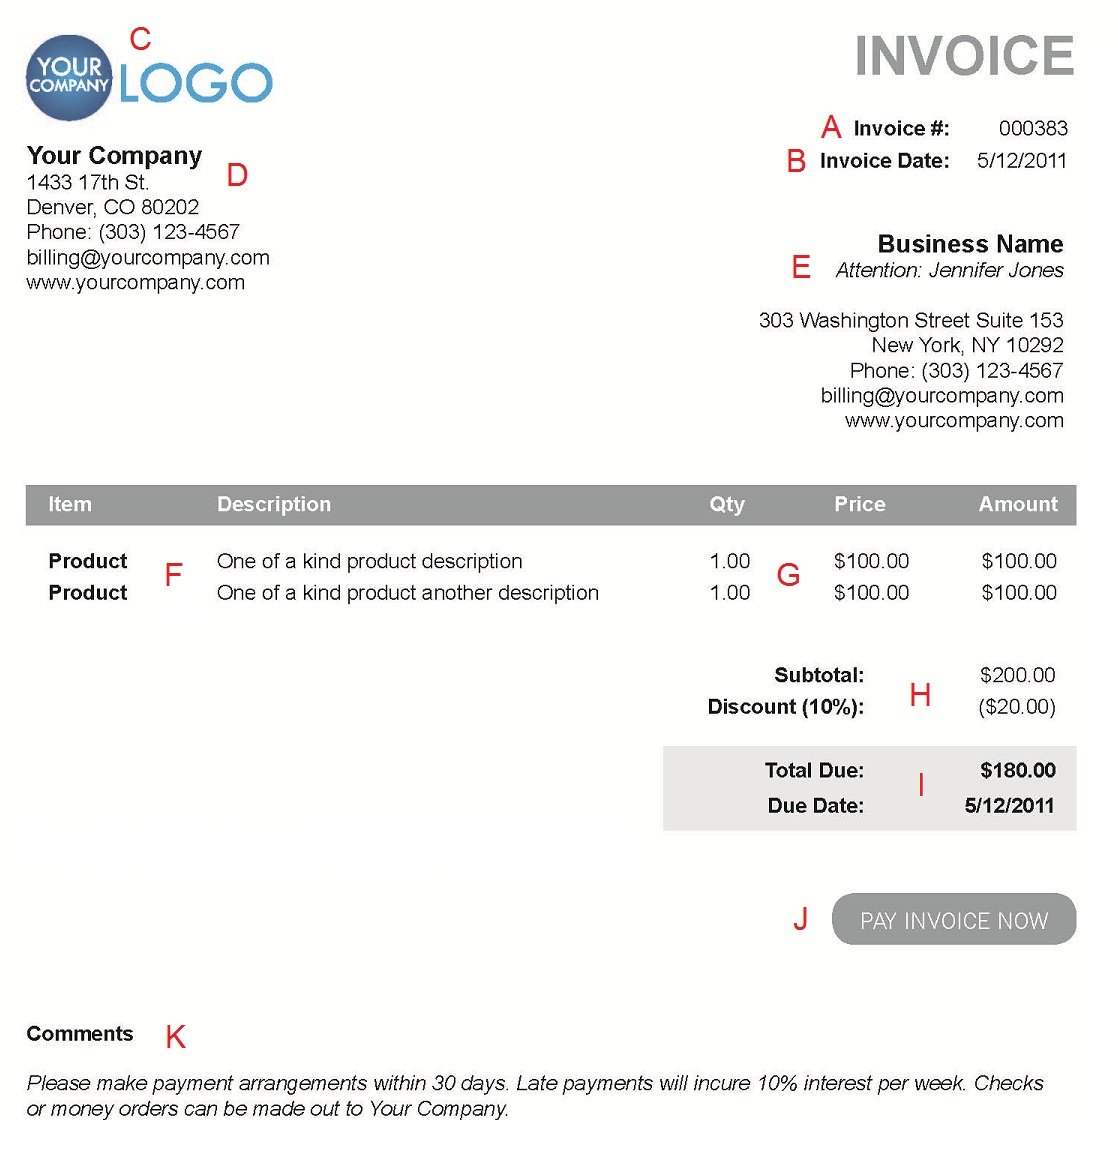 Usdgus  Winsome The  Different Sections Of An Electronic Payment Invoice With Excellent A  With Attractive Miscellaneous Invoice Also Auto Invoice Price Vs Msrp In Addition Invoice And Inventory Management Software And Invoicing Discounting As Well As Excel Invoice Template For Mac Additionally Free Invoice Forms Templates From Paysimplecom With Usdgus  Excellent The  Different Sections Of An Electronic Payment Invoice With Attractive A  And Winsome Miscellaneous Invoice Also Auto Invoice Price Vs Msrp In Addition Invoice And Inventory Management Software From Paysimplecom